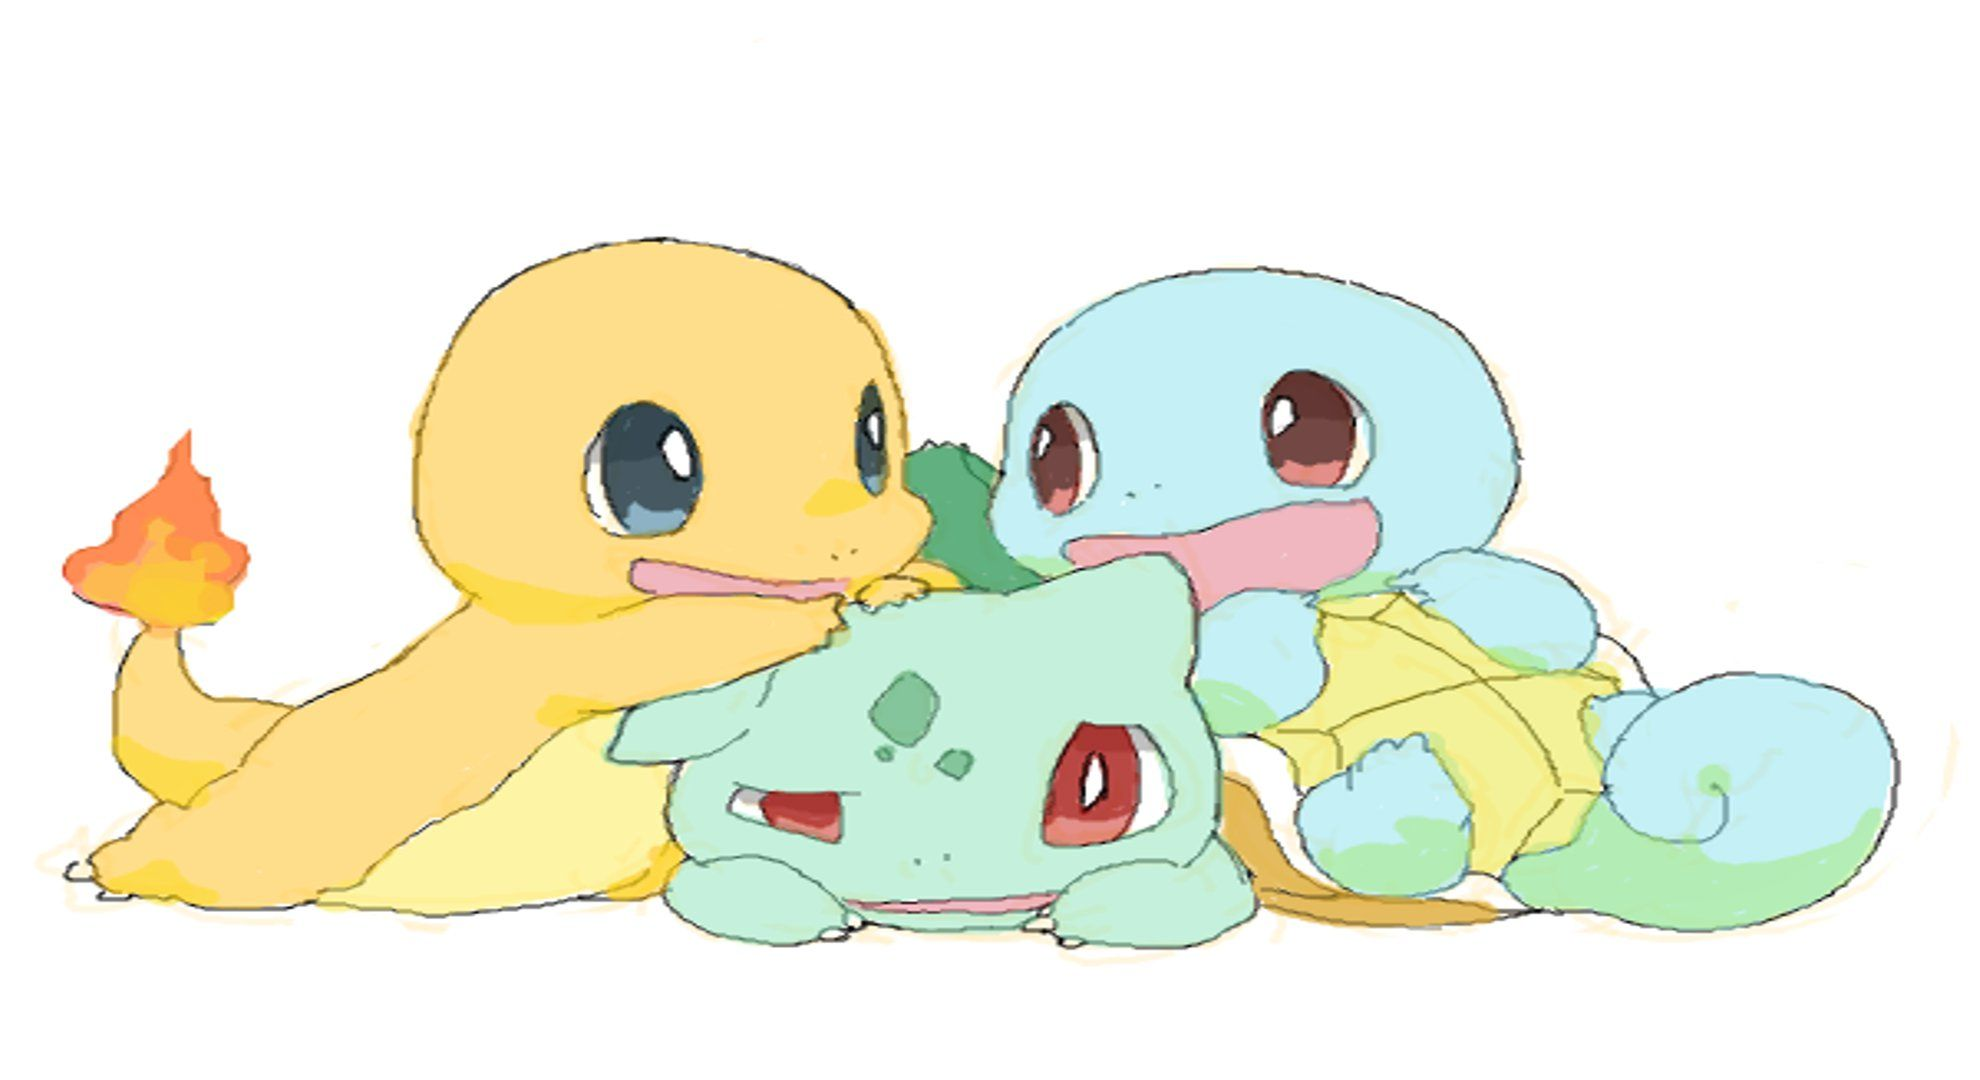 And Squirtle Bulbasaur Charmander Cute Pokemon Squirtle